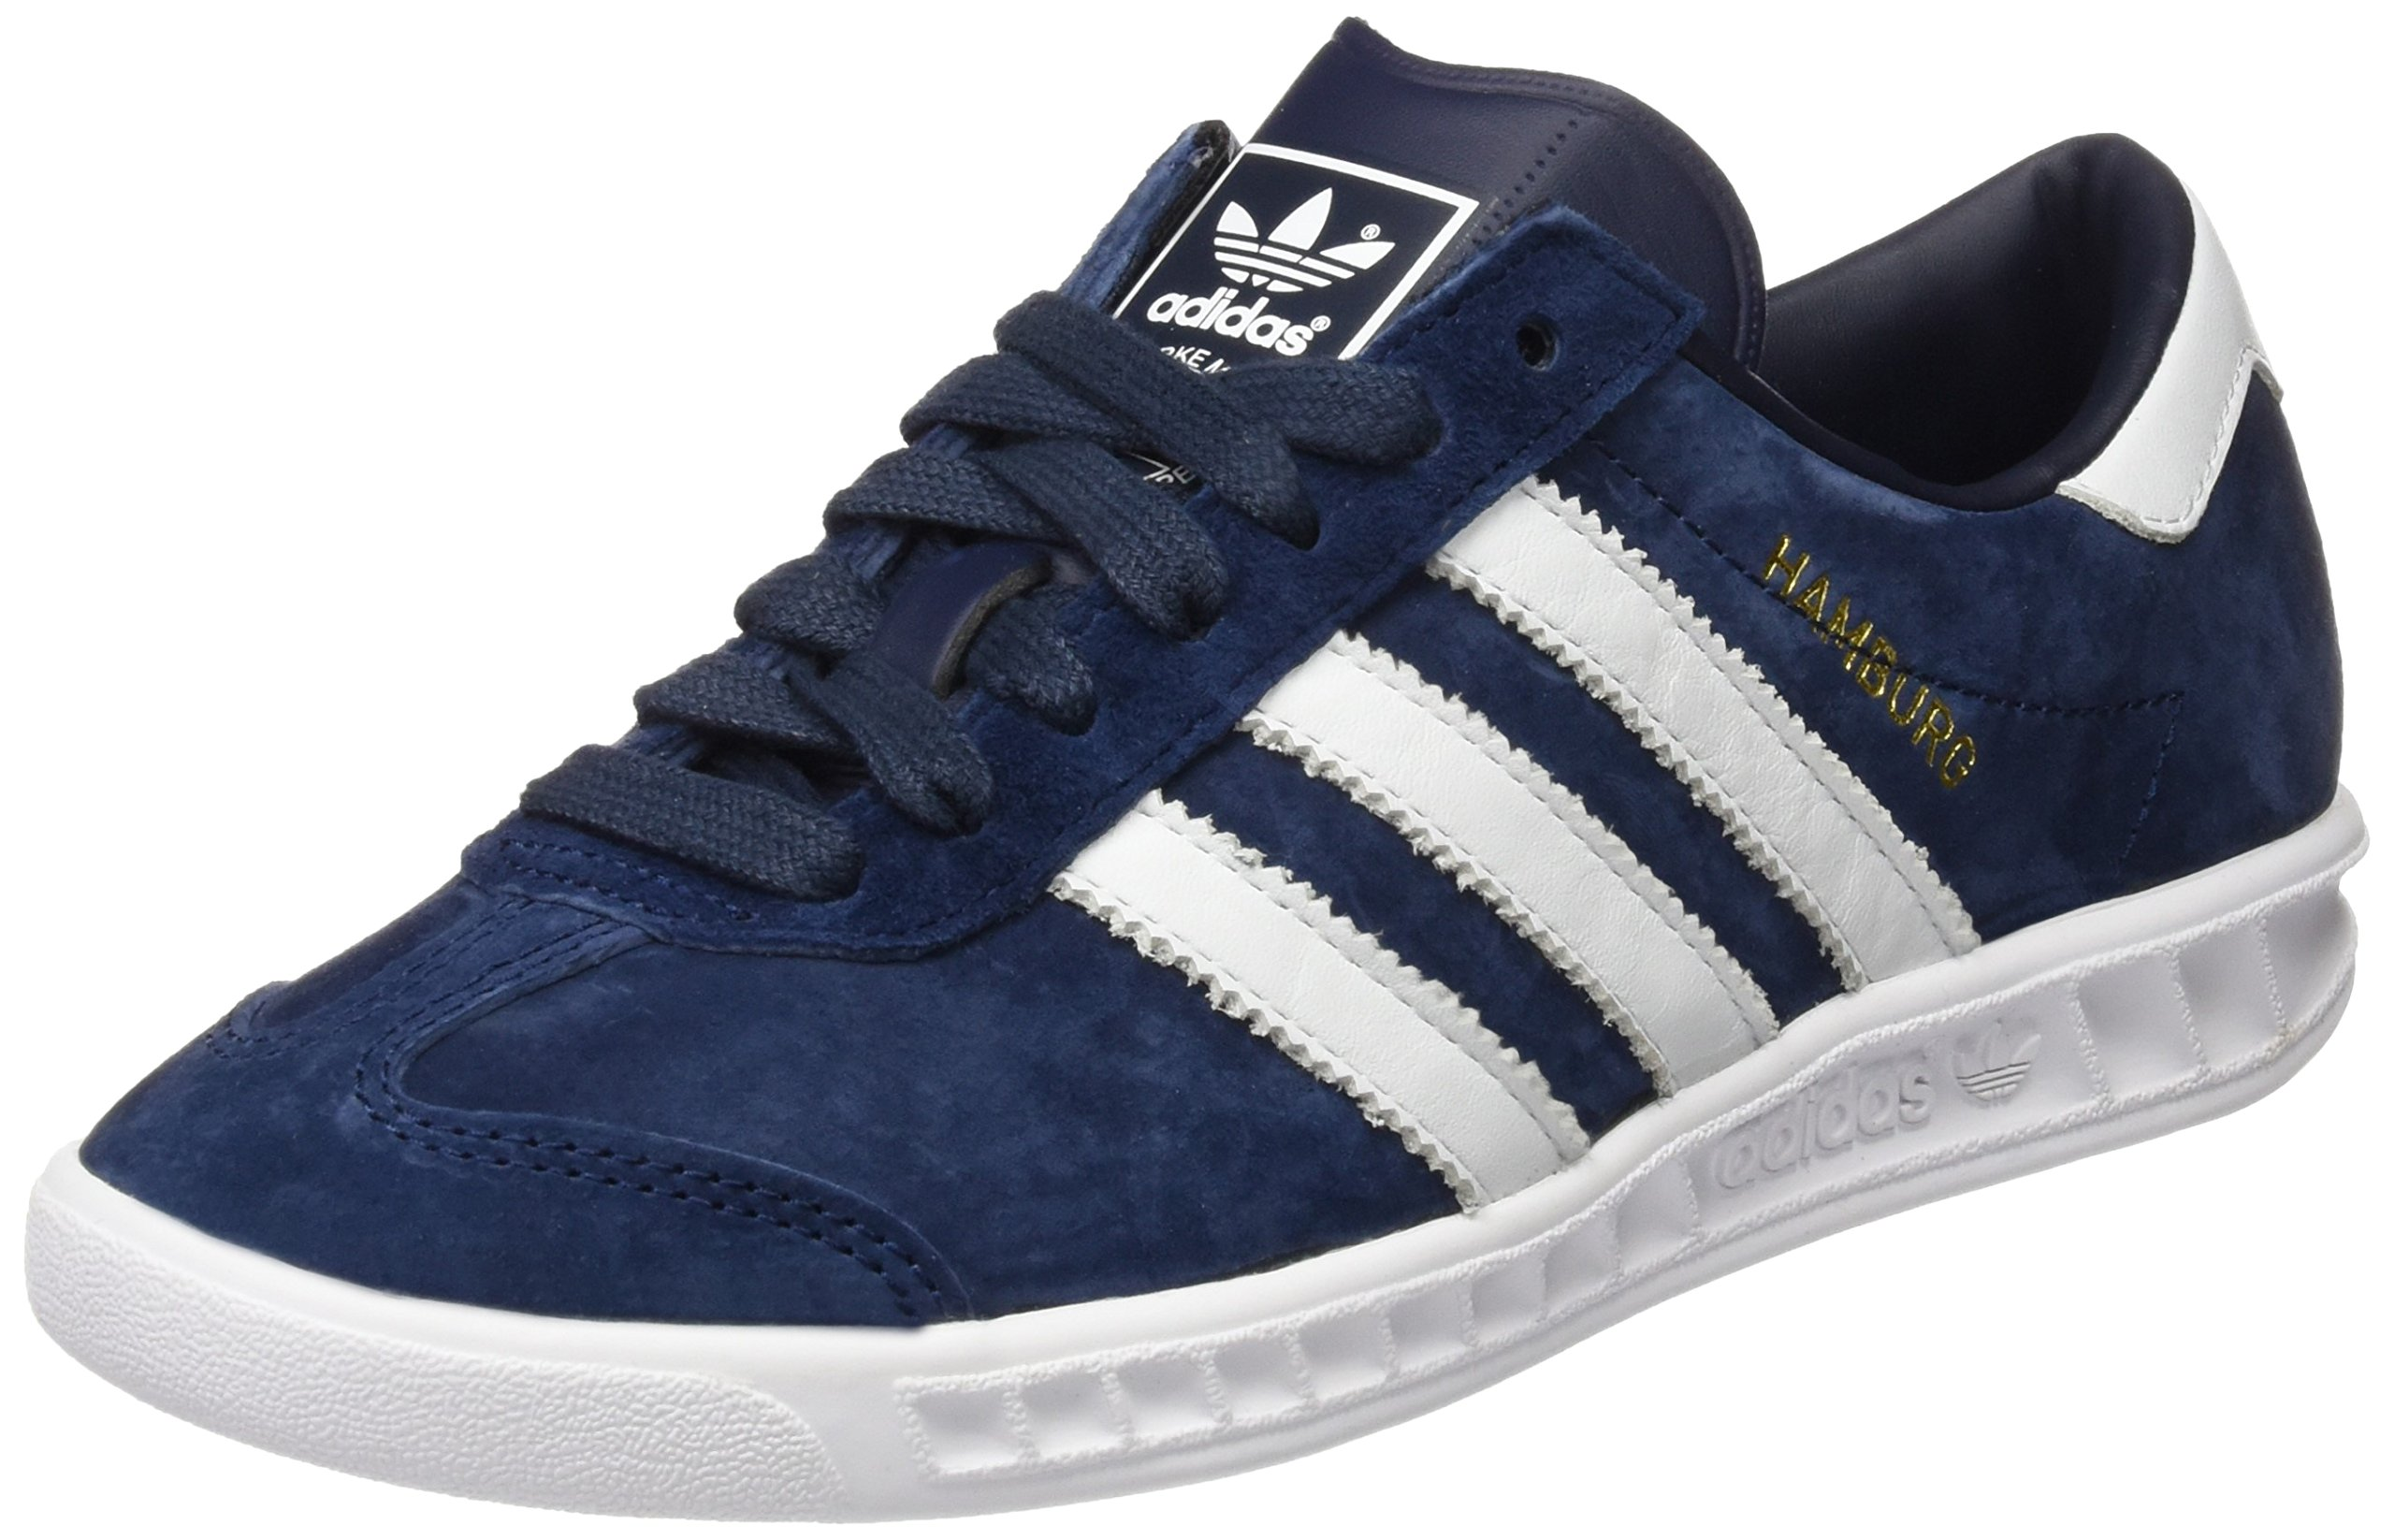 adidas Hamburg Men's Sneaker (9 D(M) US)